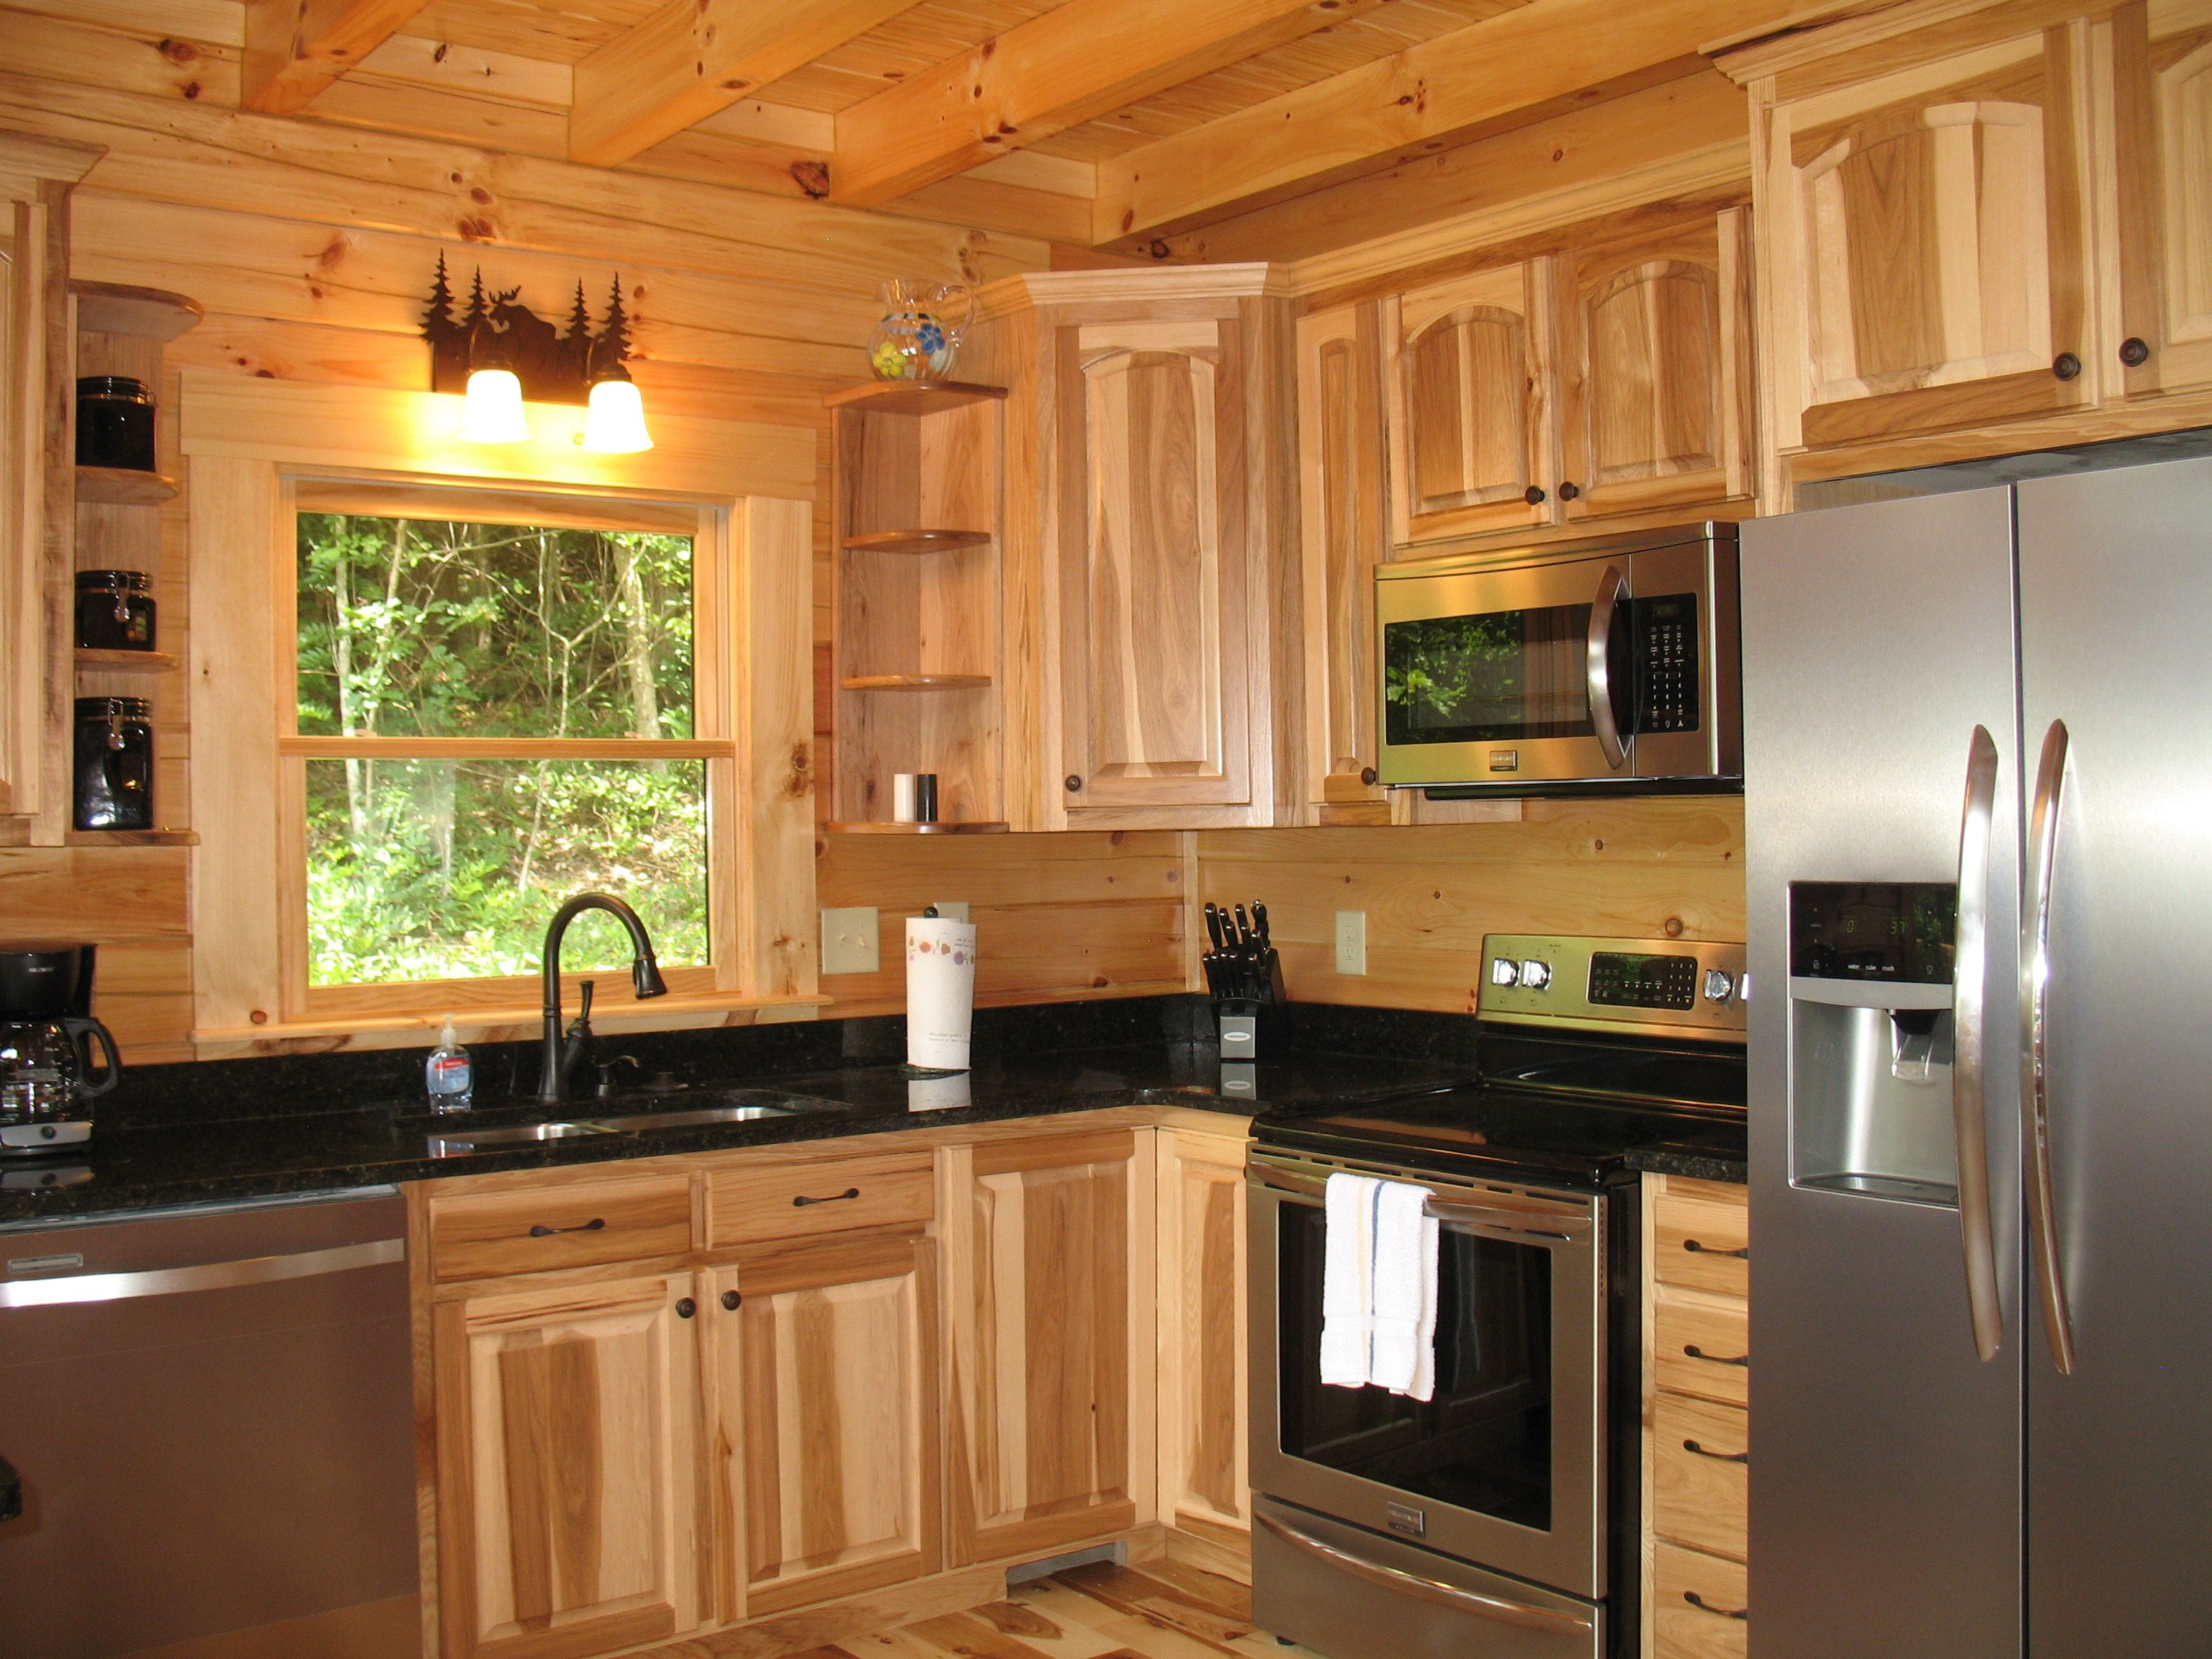 Best Image Result For What Countertops Go With Hickory Cabinets 400 x 300